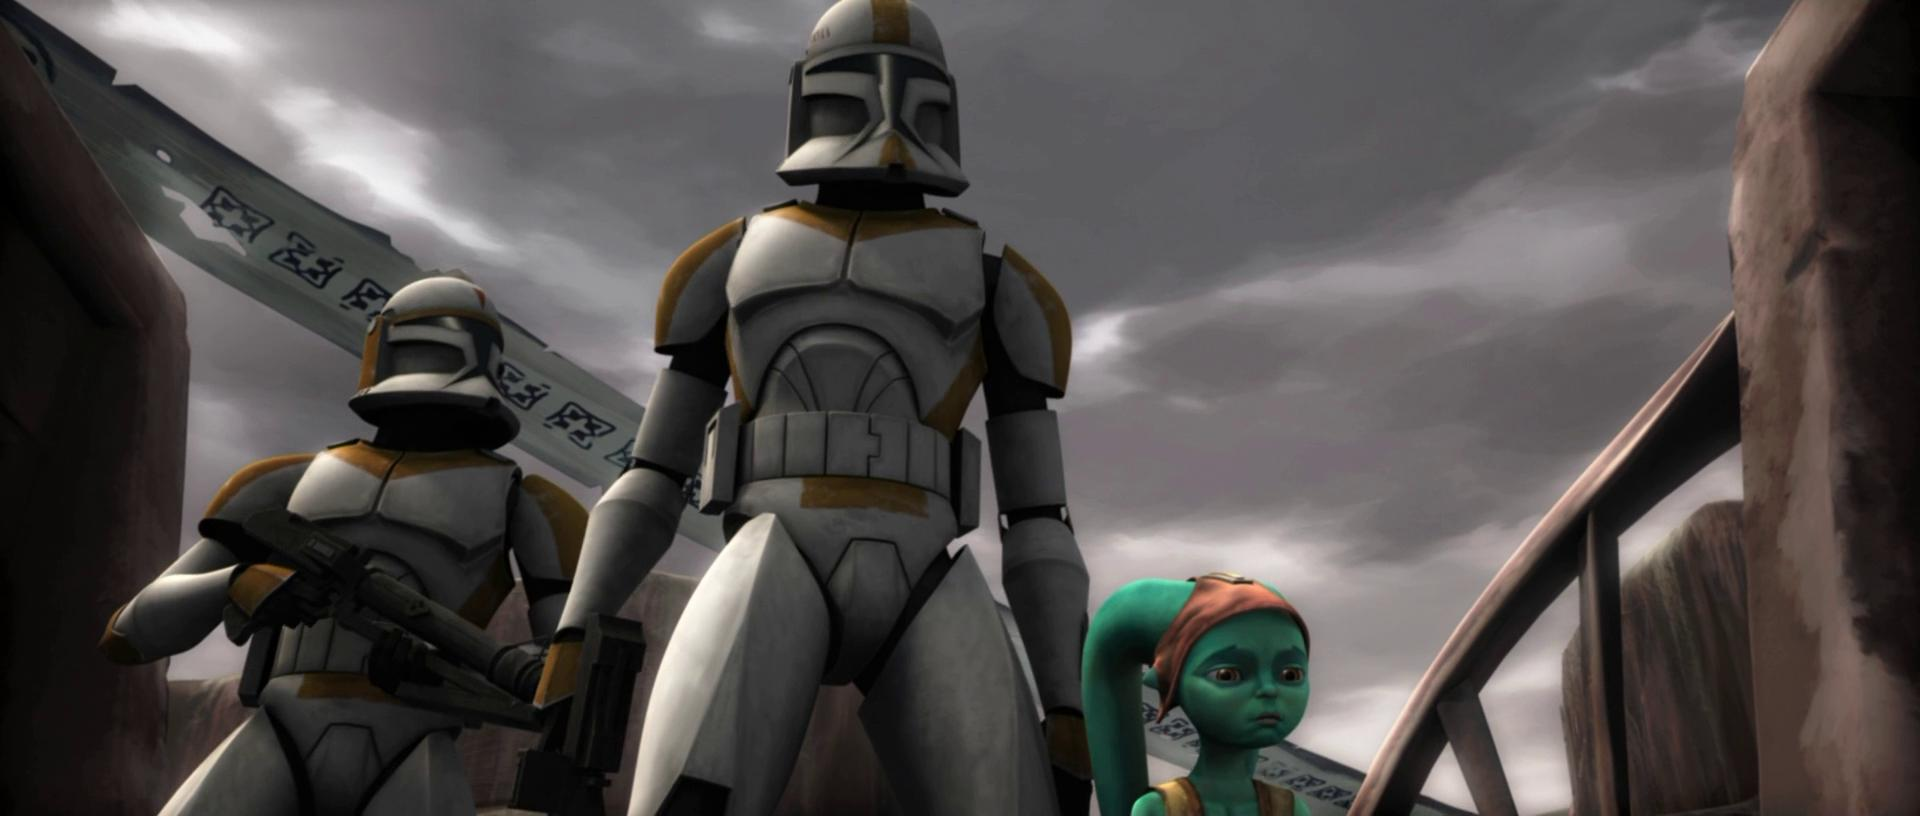 Star Wars The Clone Wars Innocents of Ryloth TV Episode 2009 1920x816